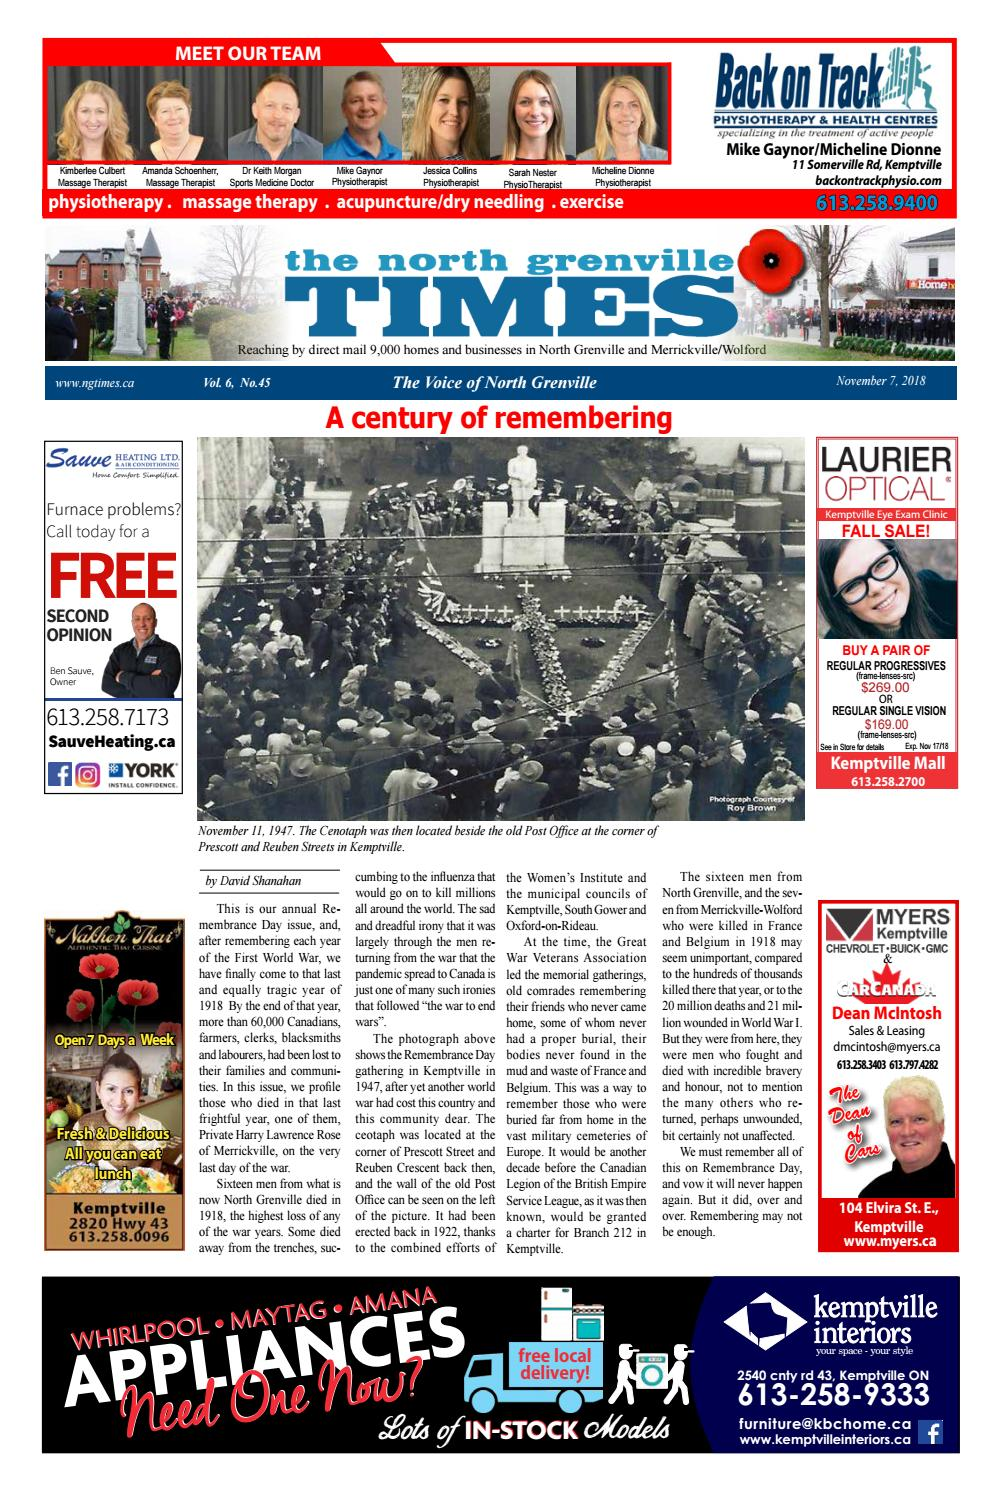 Salon De Massage Amiens Issue 45 2018 November 7 Ng Times By The North Grenville Times Issuu